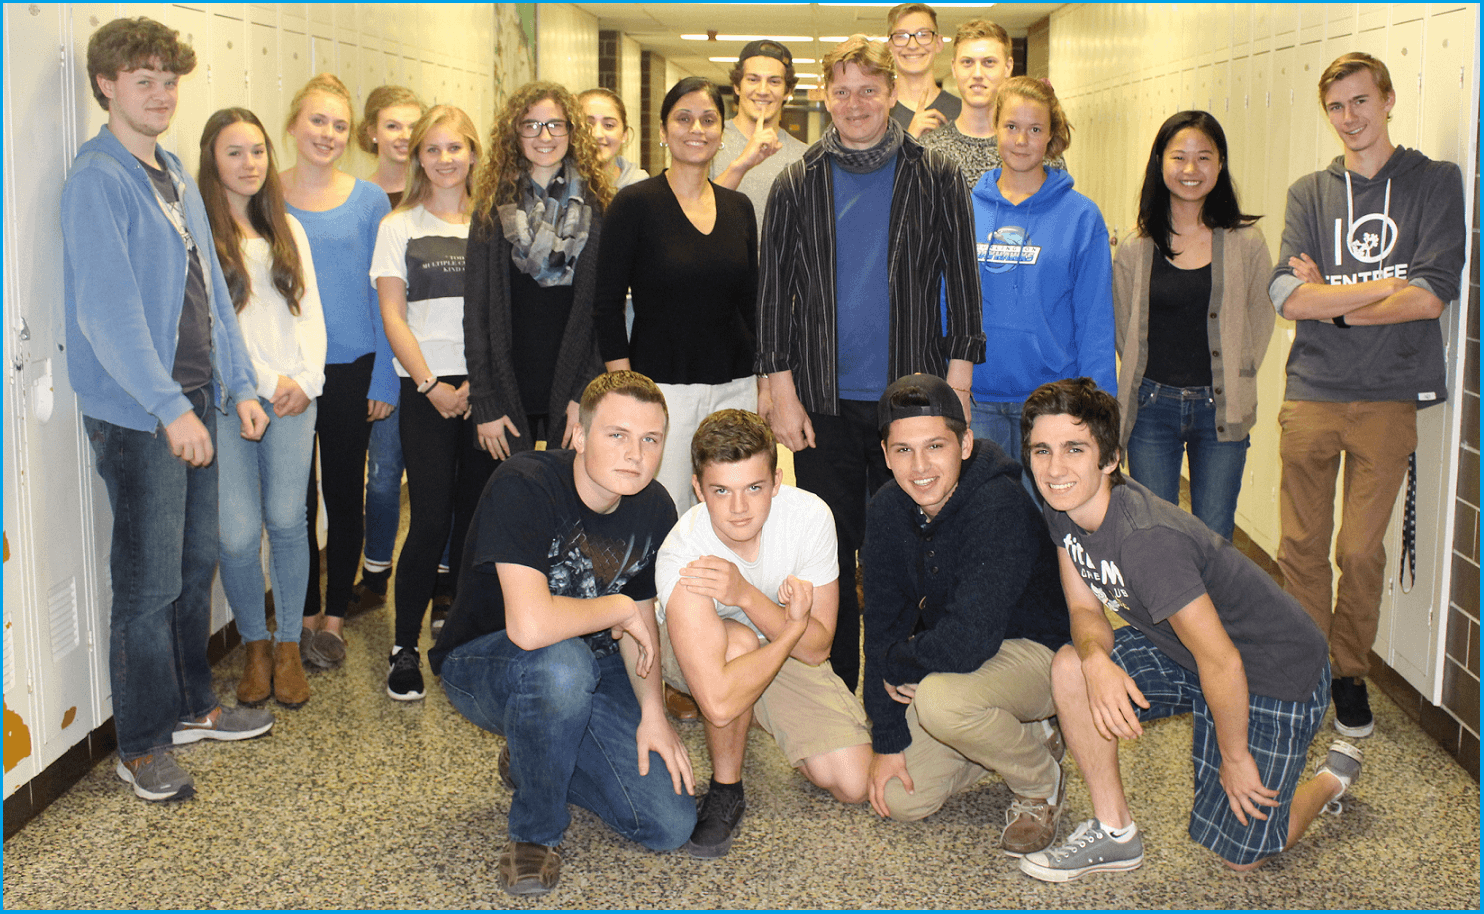 Photo Group at Aldershit Highschool Oct 2015 with Tim Bruce